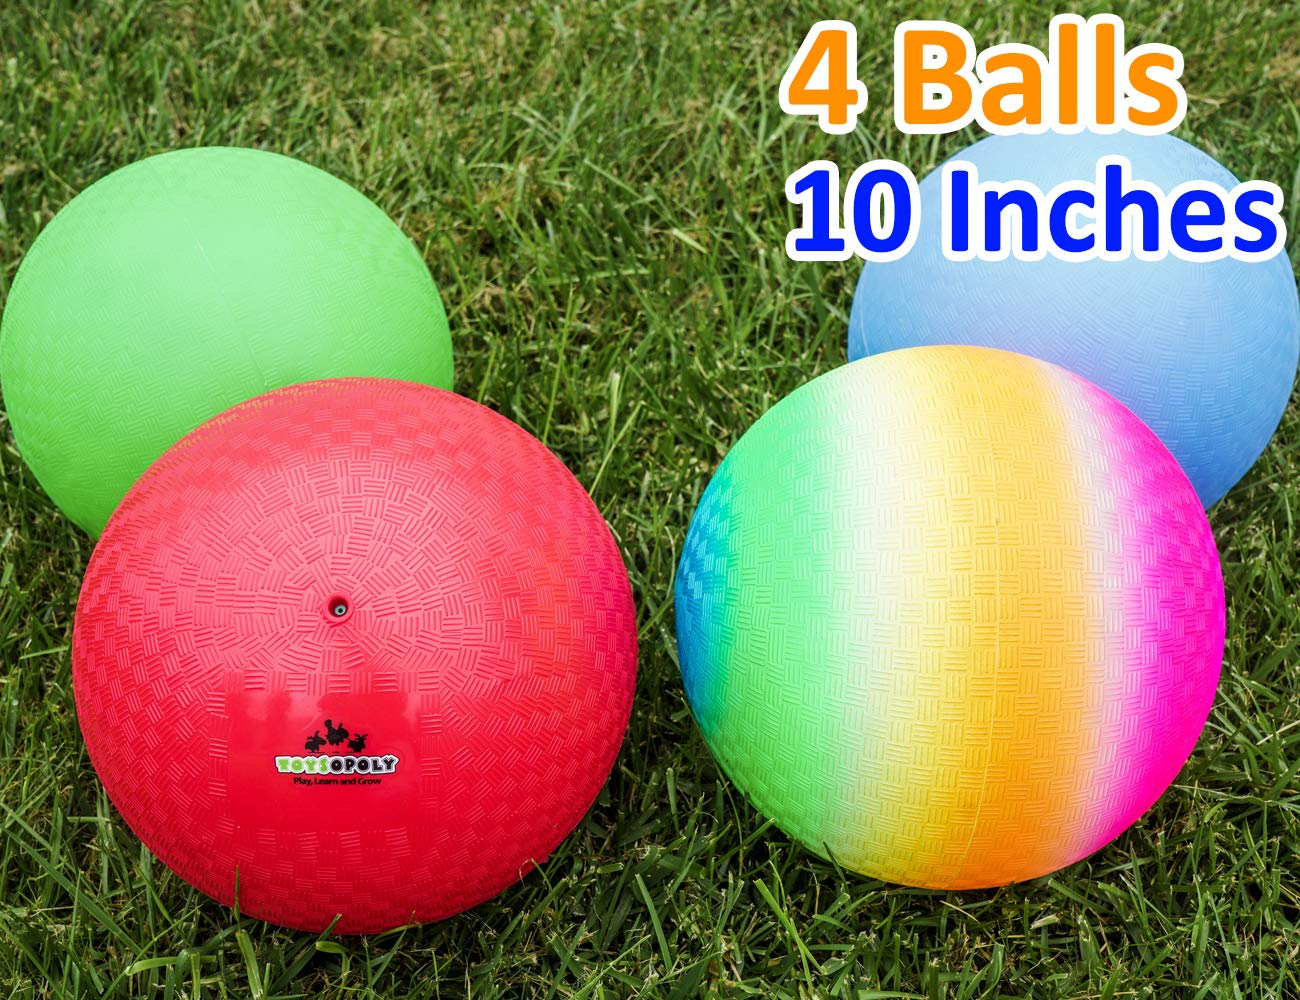 Playground Balls 10 inch Dodgeball (Set of 4) Kickball for Boys Girls Kids Adults - Official Size Bouncy Dodge Ball, Handball, Four Square Picnic School + Free Pump